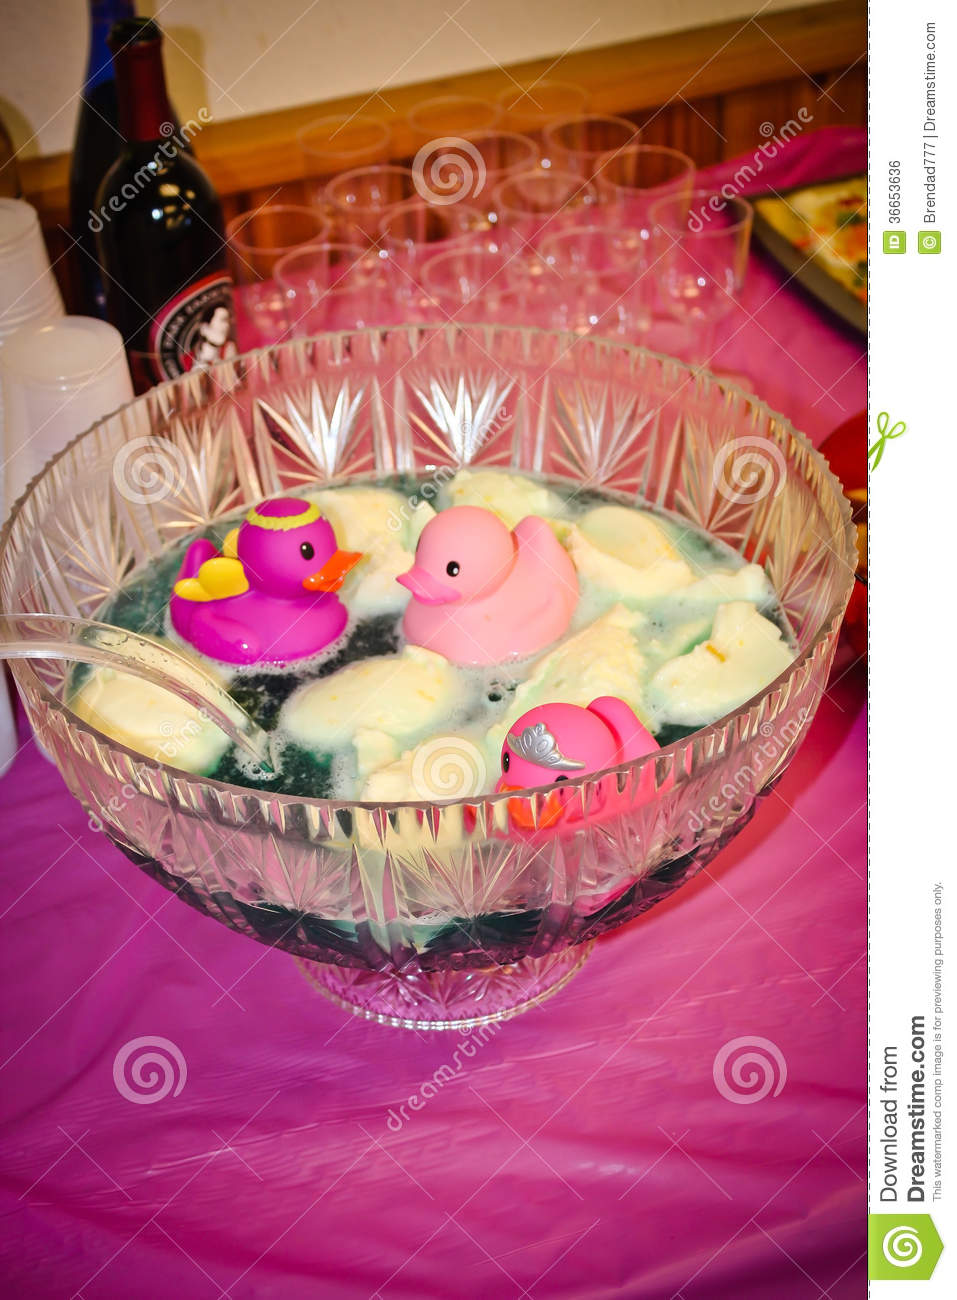 Baby Shower Punch Bowl Royalty Free Stock Image   Image: 36653636